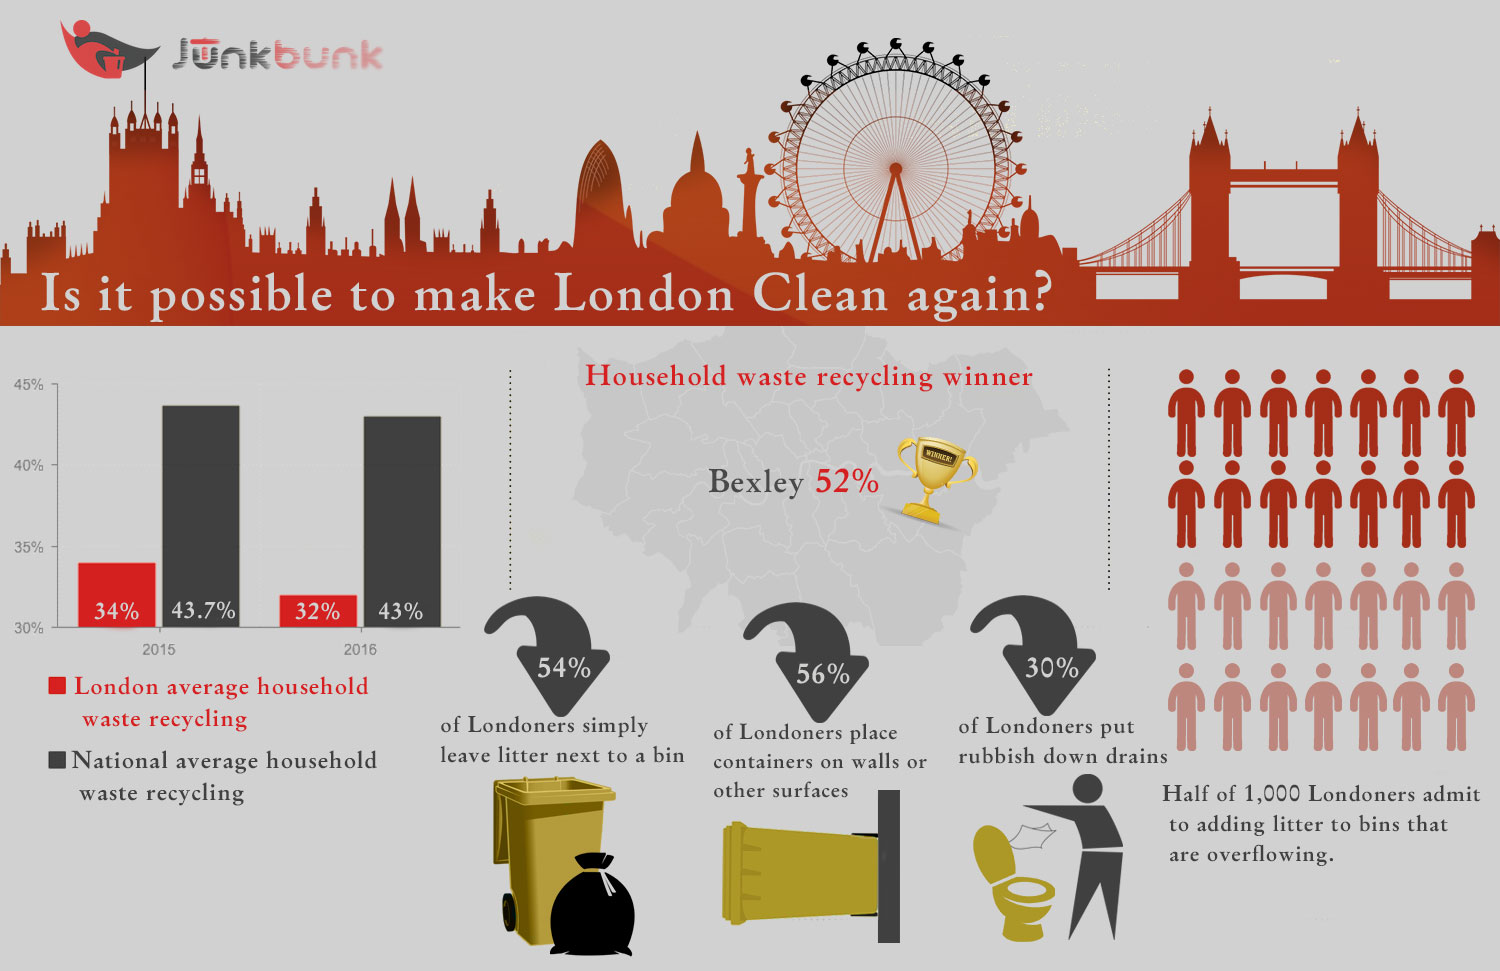 london clean again